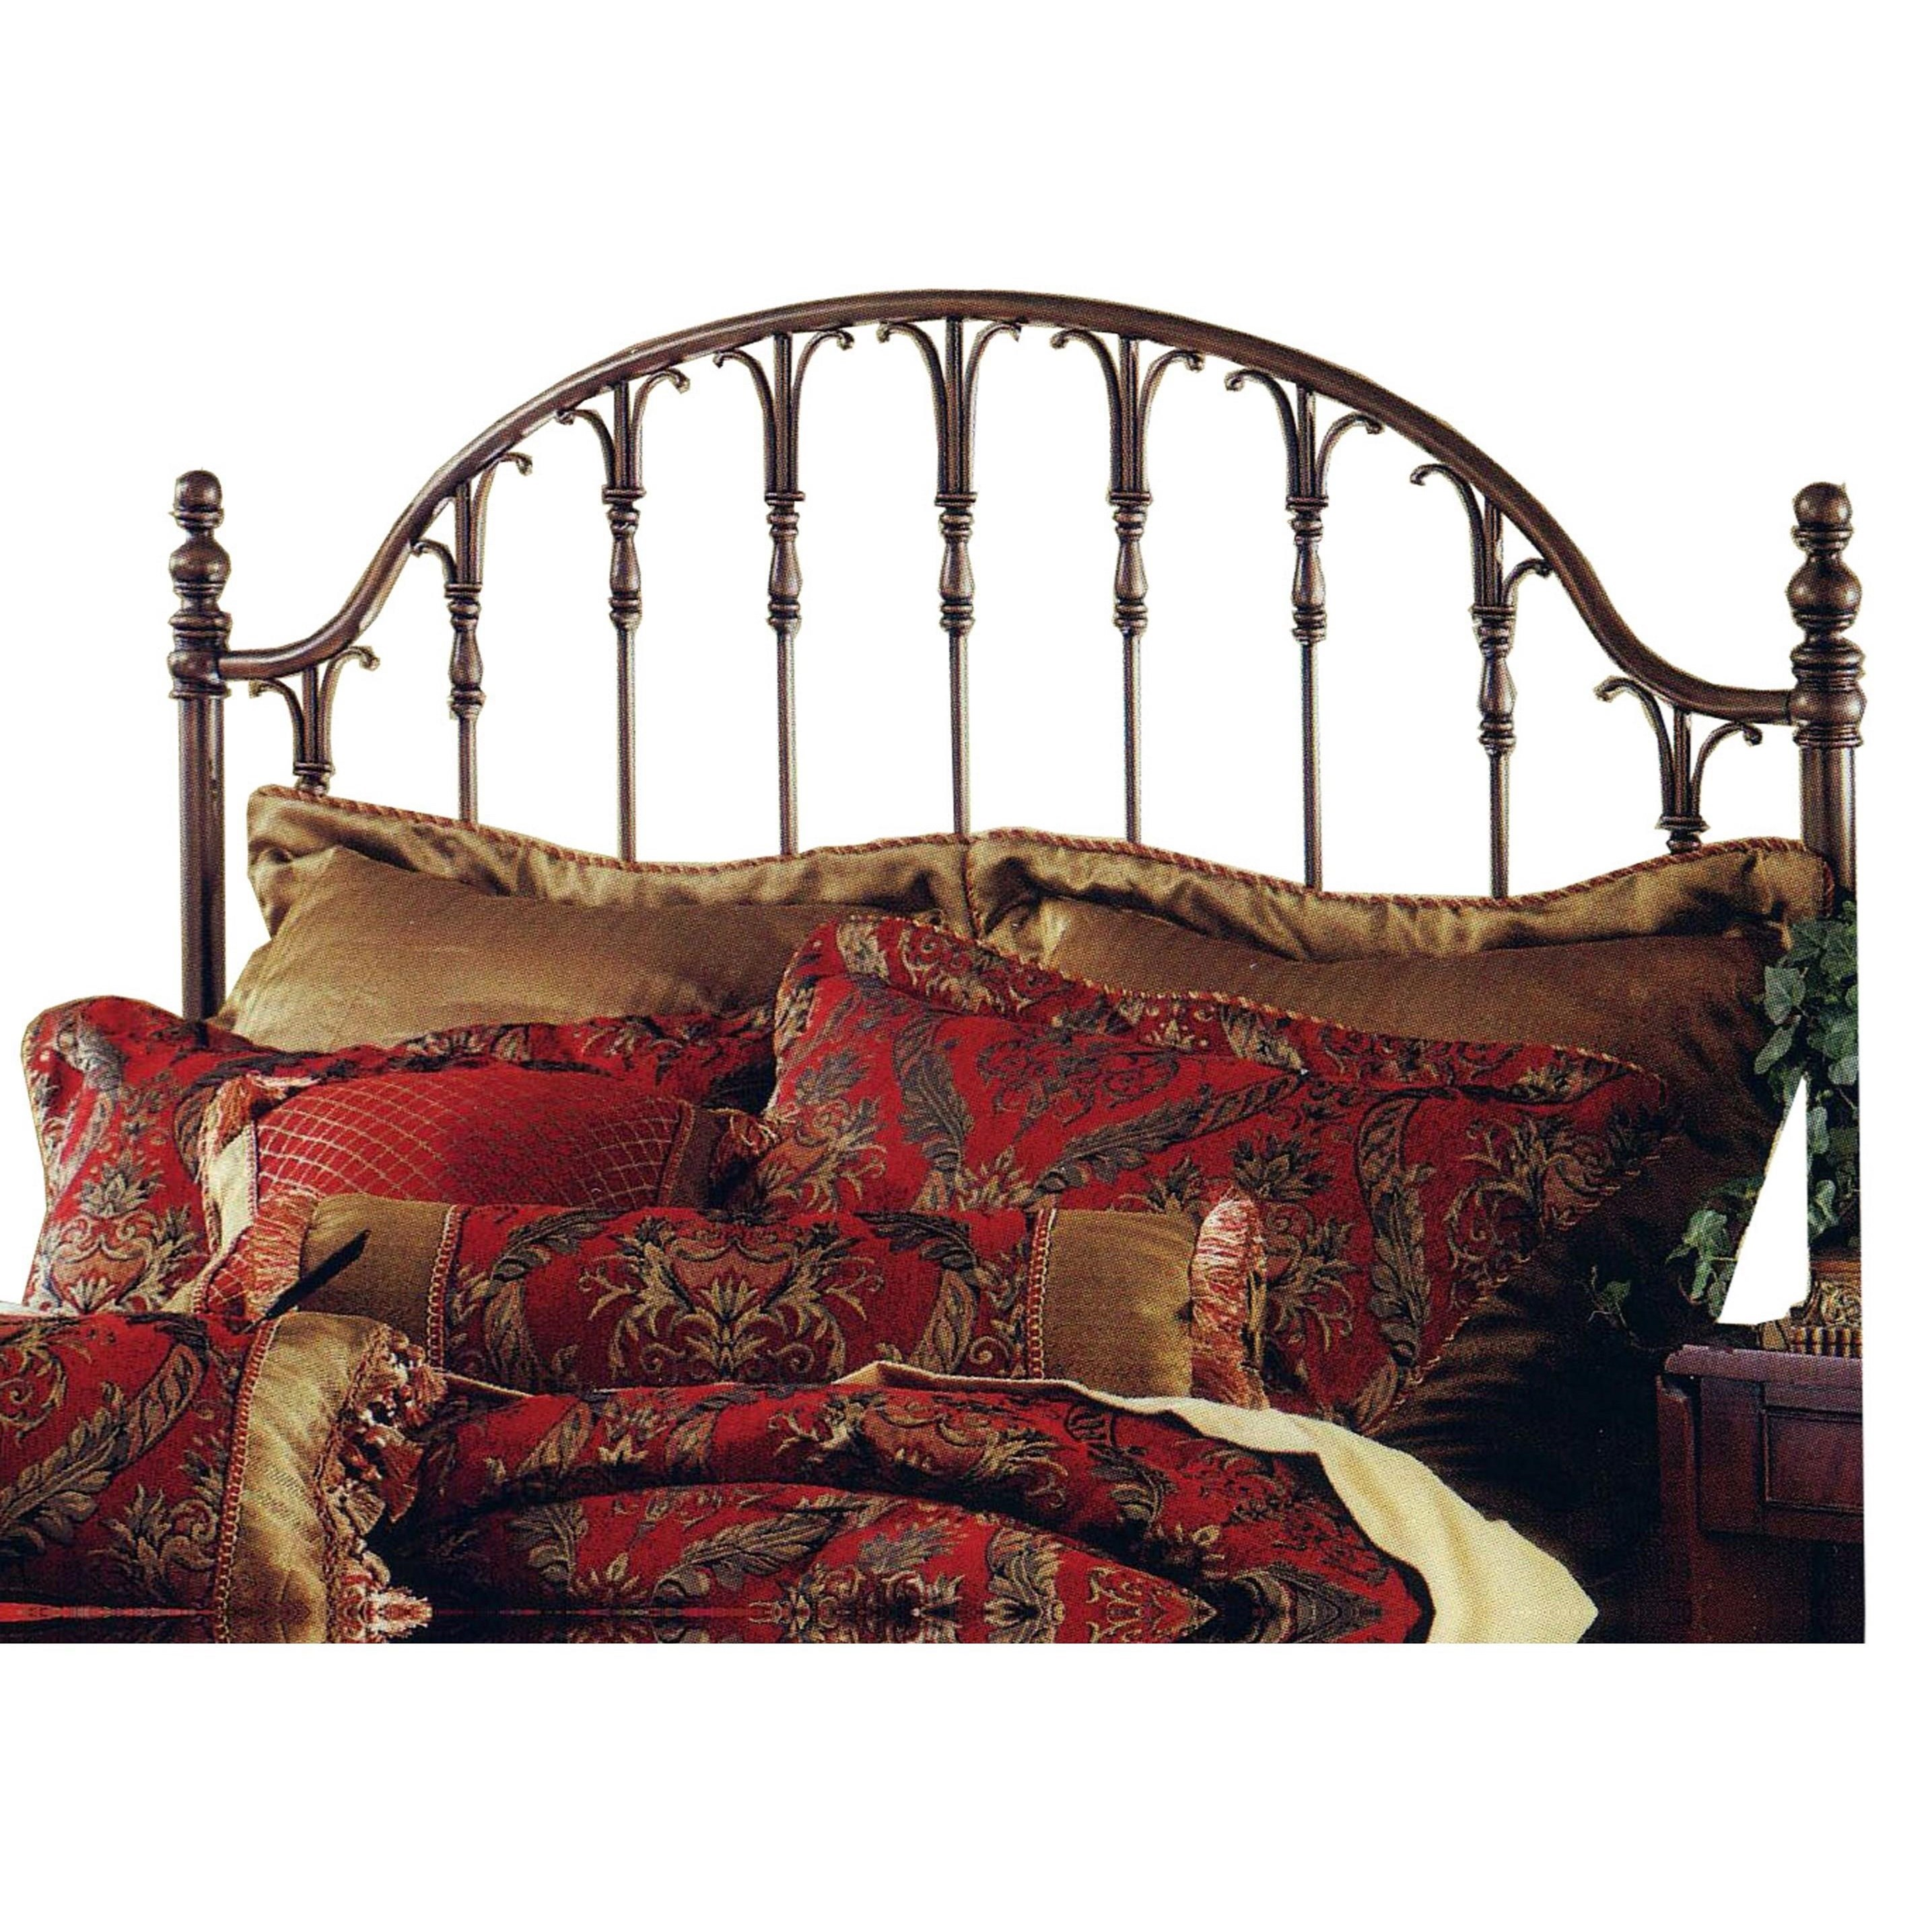 Hillsdale Metal Beds Full/Queen Tyler Headboard - Item Number: 1239HFQ